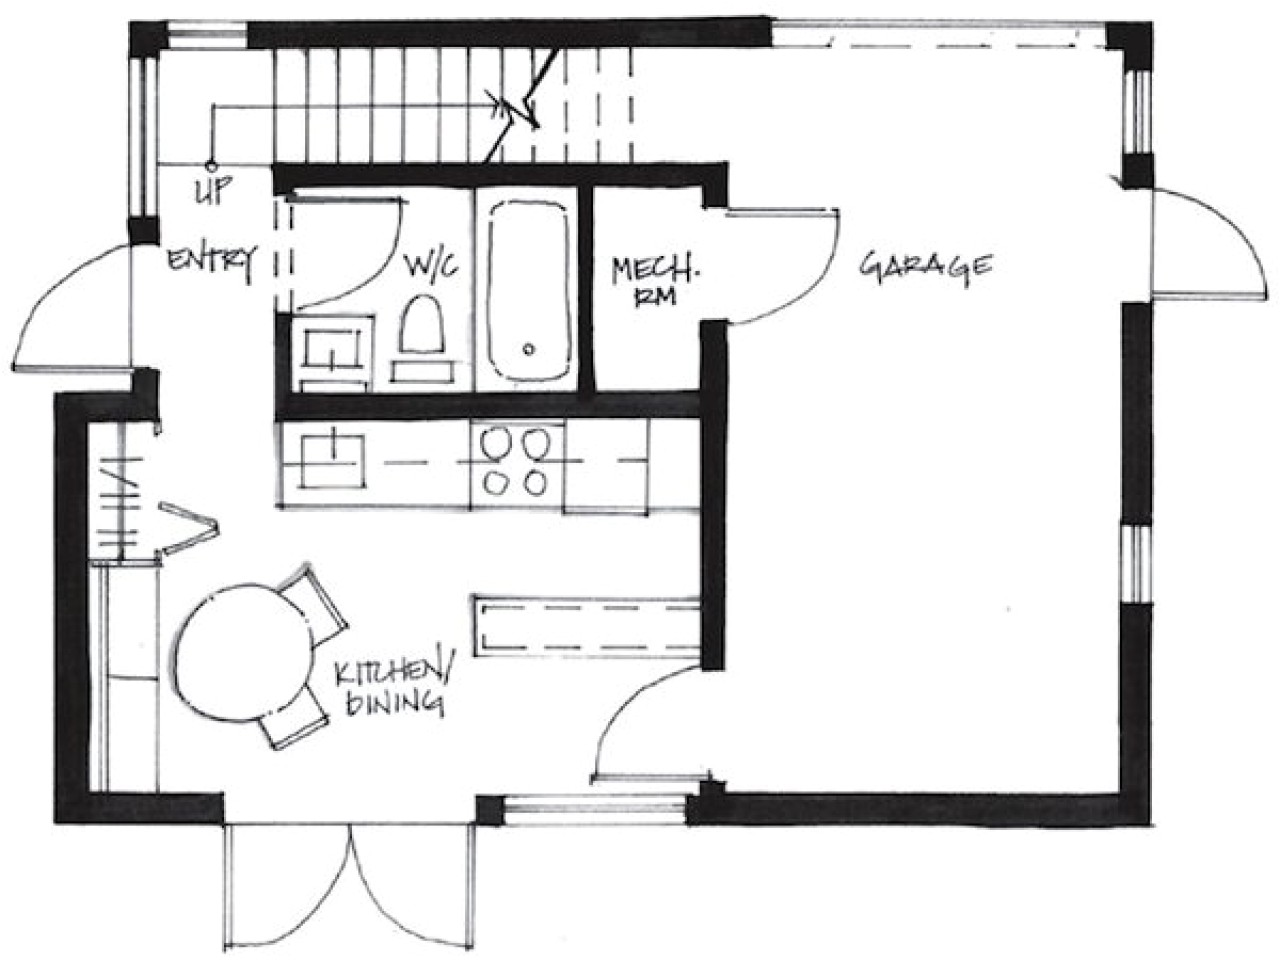 500 Sq Ft Home Plans 500 Sq Ft Cottage Plans 500 Sq Ft Tiny House Floor Plans